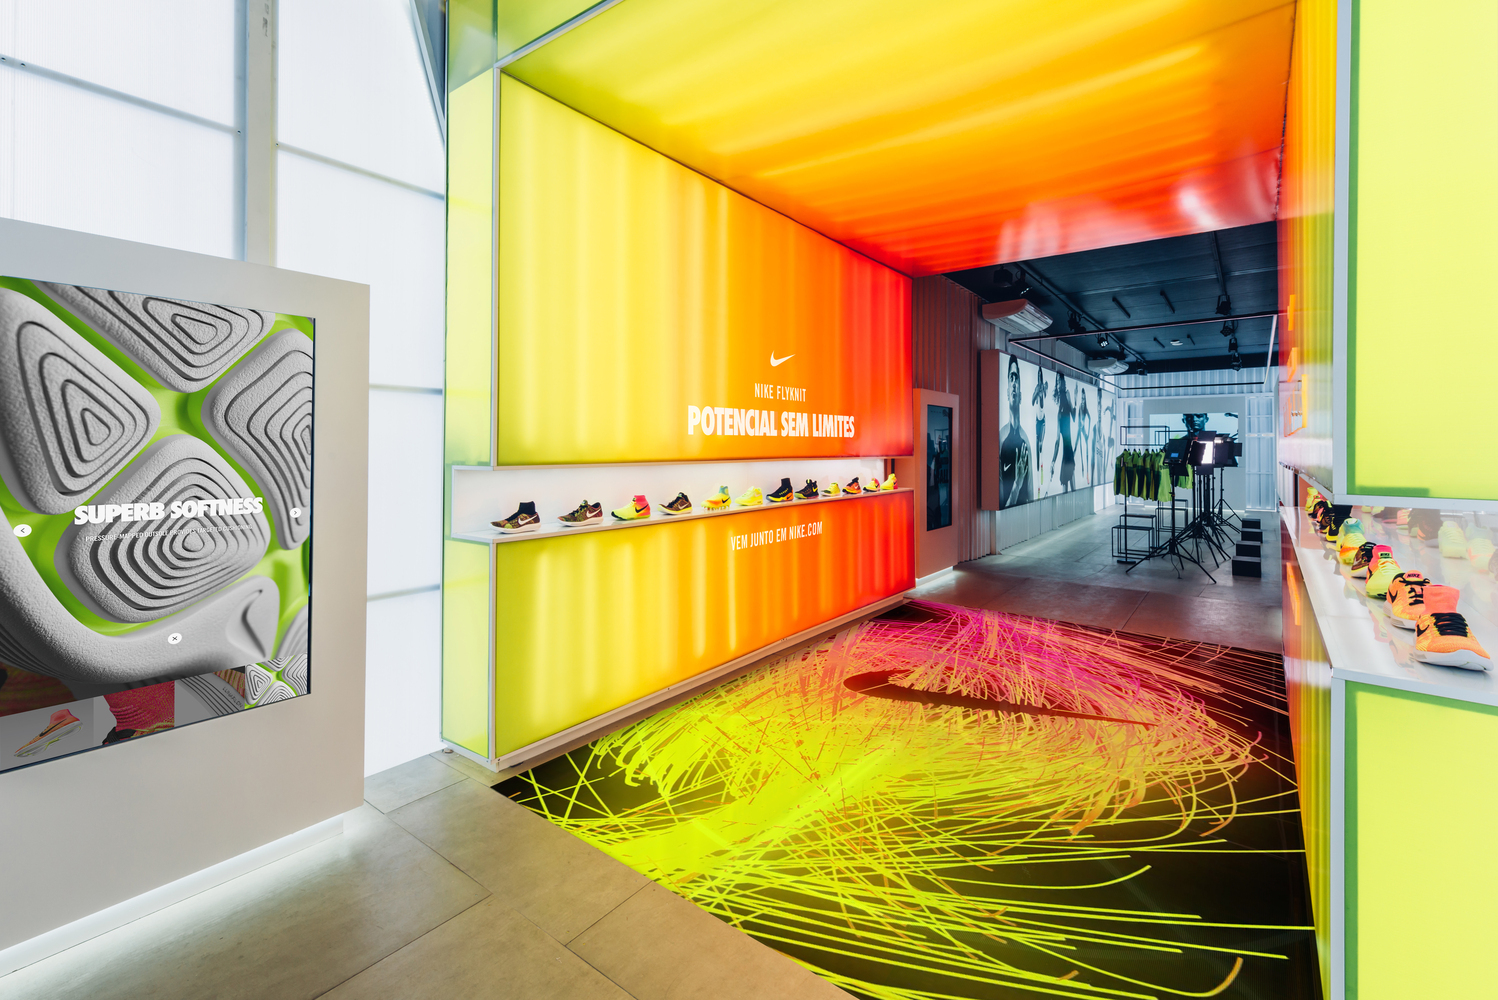 fe8d6b2ed4ea GTM Cenografia Uses Shipping Containers in Rio Olympic Pop-up Store for Nike.  Courtesy of Nike